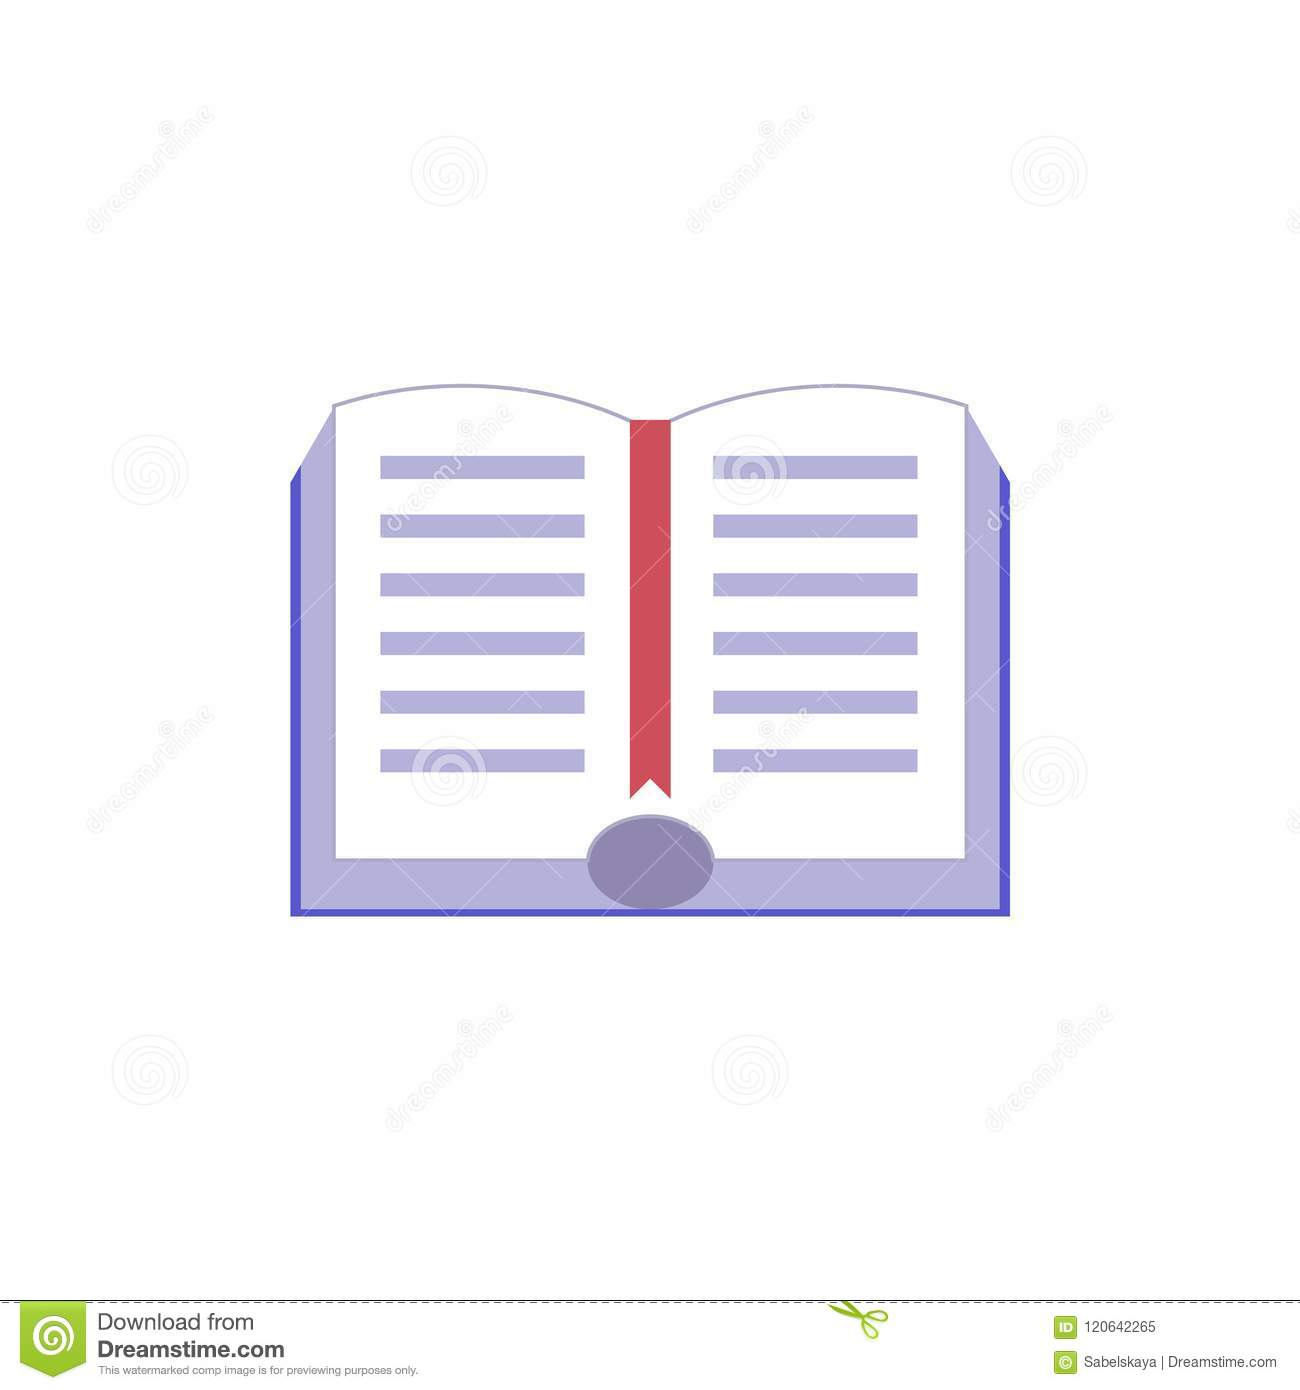 Open document boek met hardcover en rood referentie vlak pictogram